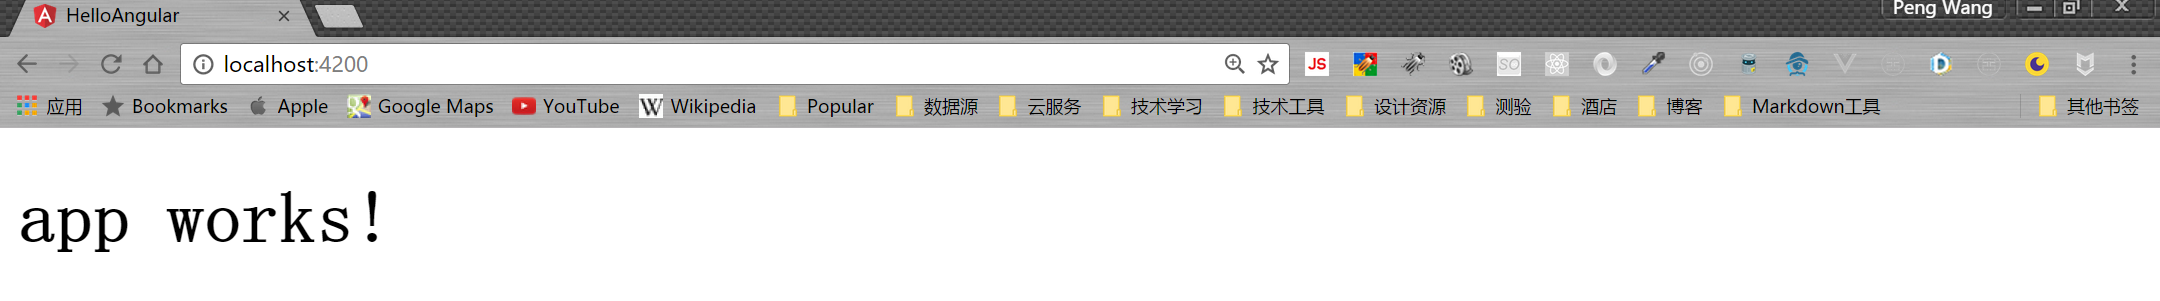 c1_s1_project_1st_browser.png-135.7kB